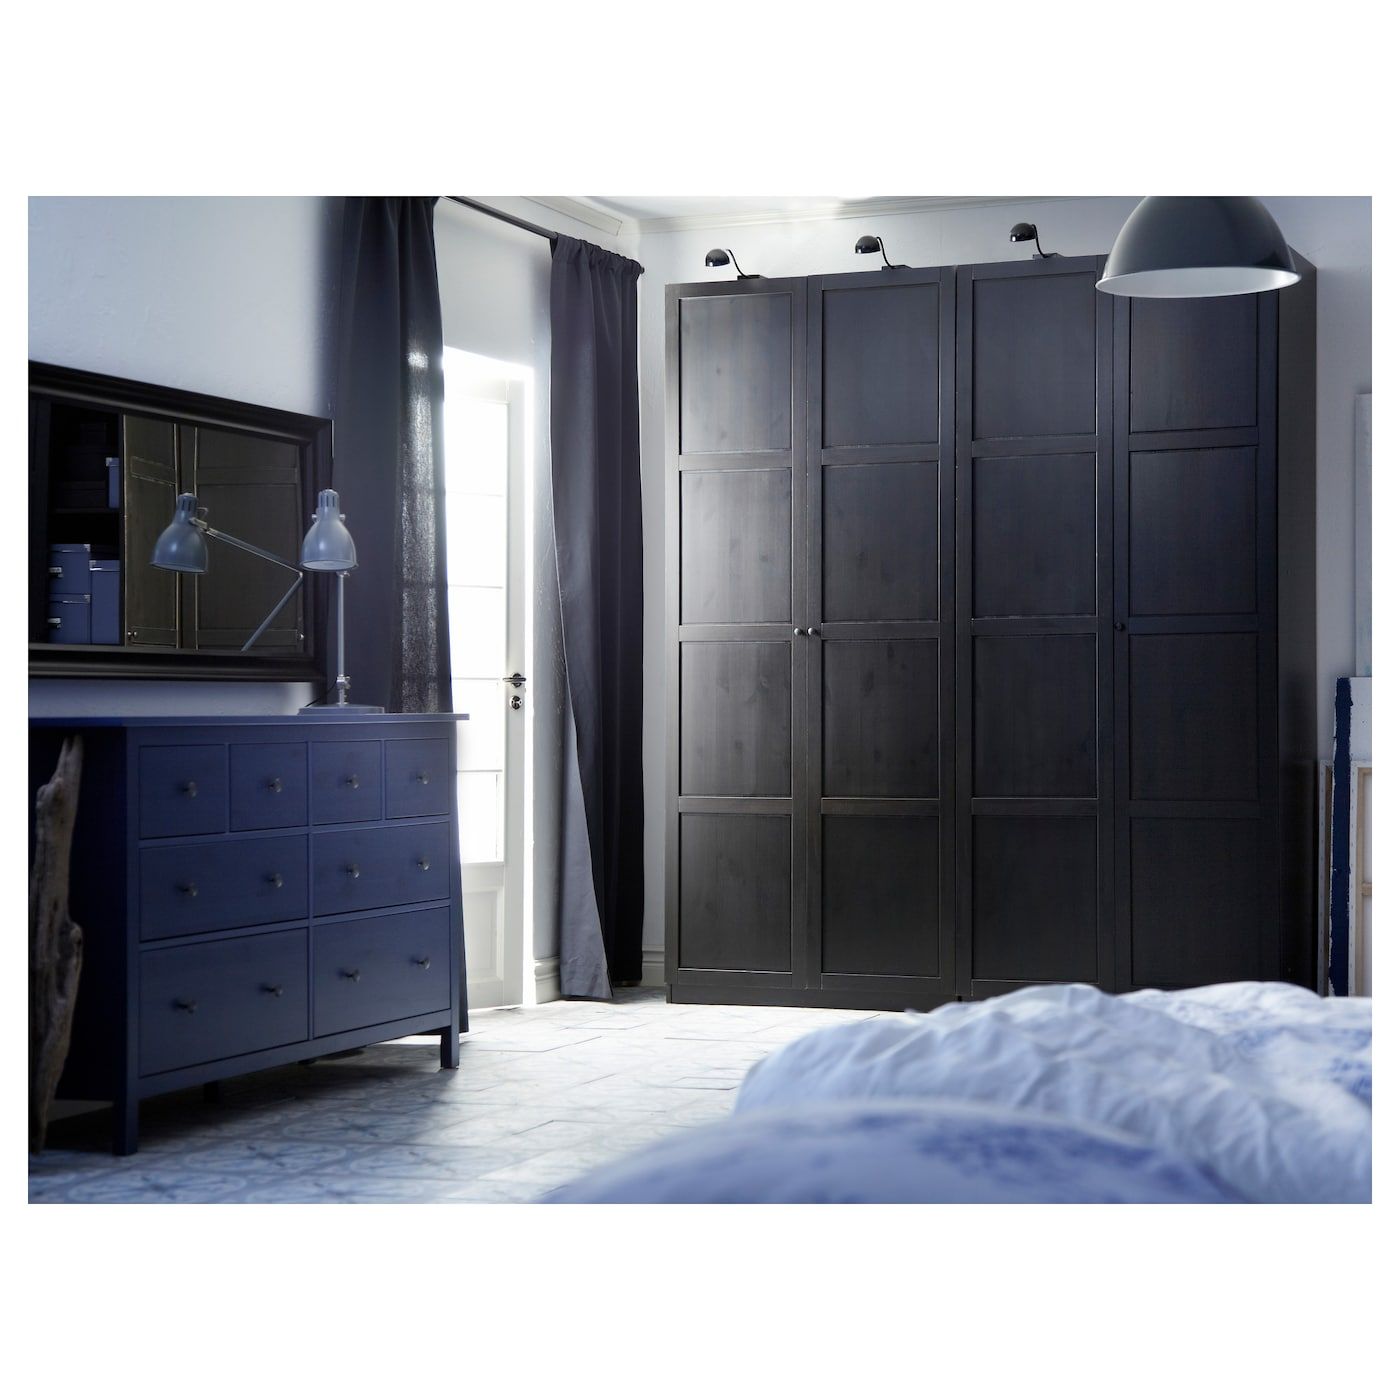 hemnes porte avec charni res brun noir 50x229 cm ikea. Black Bedroom Furniture Sets. Home Design Ideas